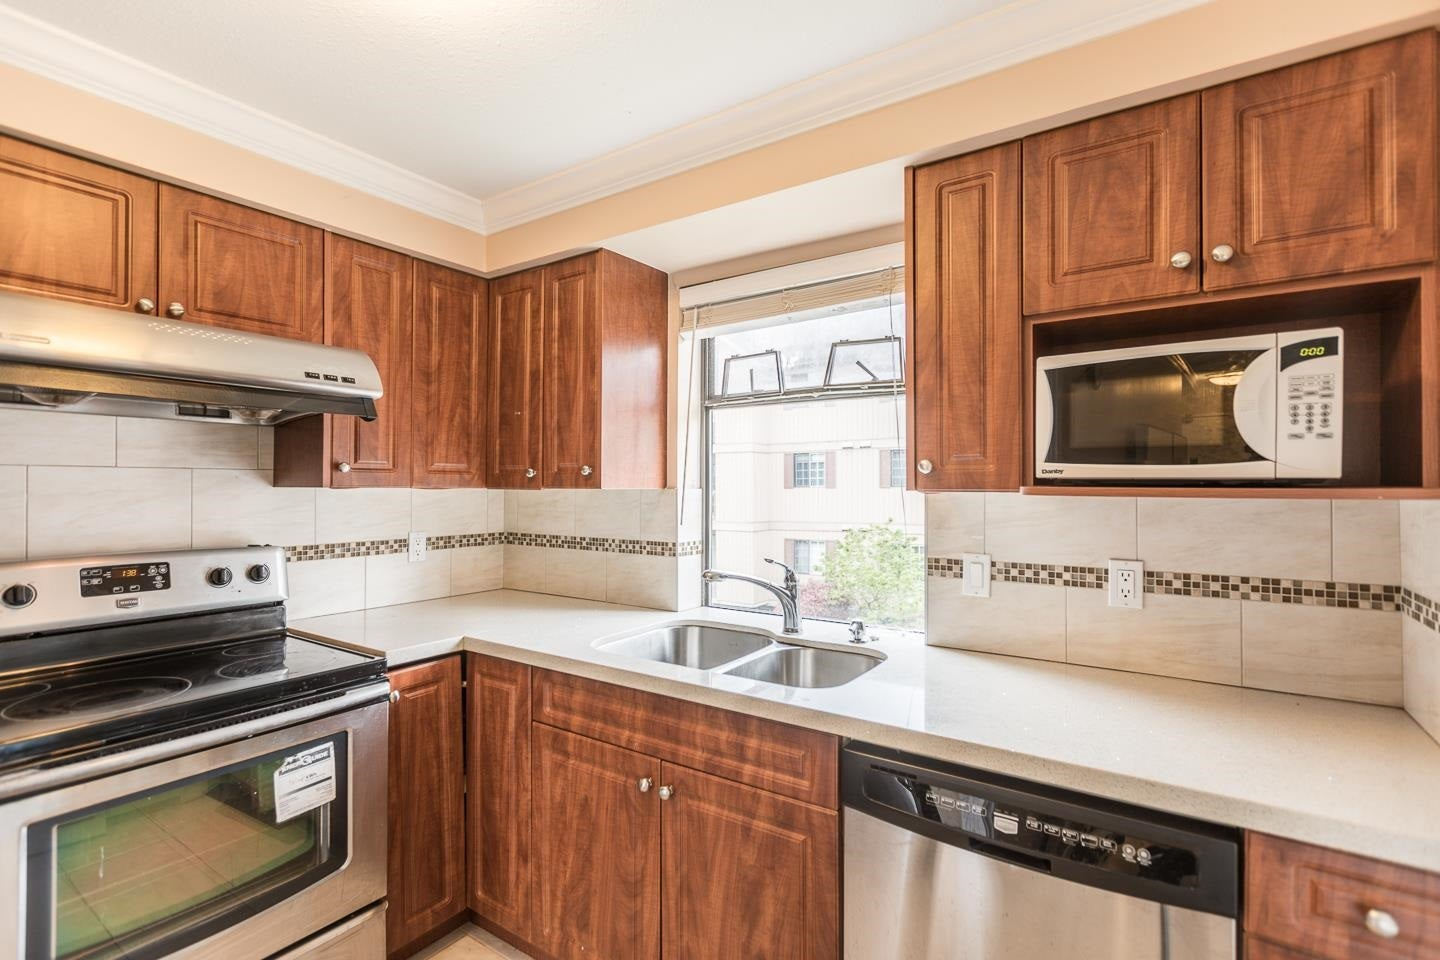 209 8451 WESTMINSTER HIGHWAY - Brighouse Apartment/Condo for sale, 1 Bedroom (R2605203)